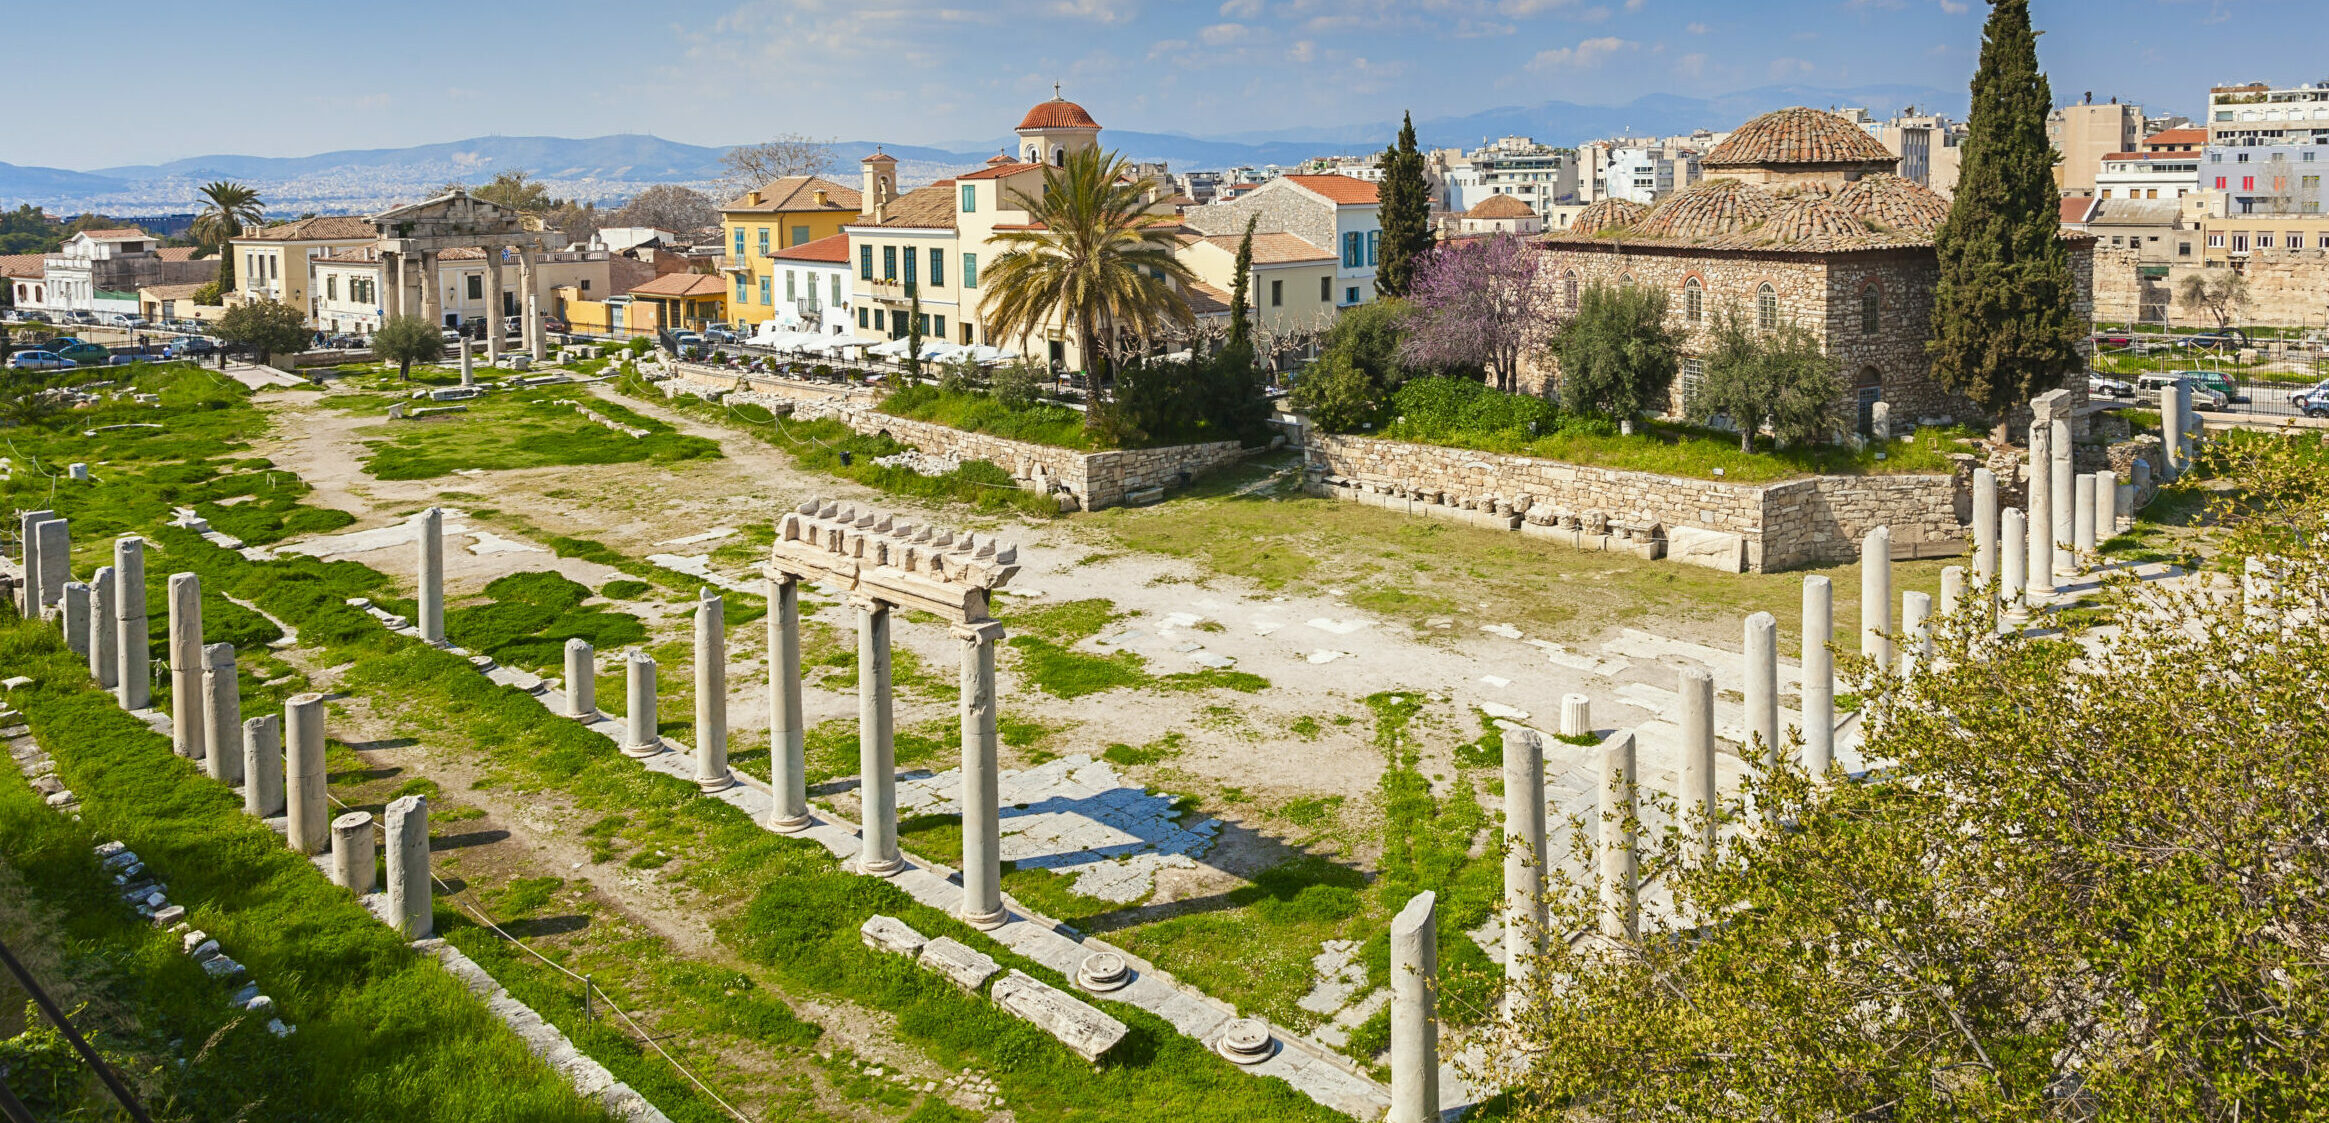 Gone forever:  the old neighborhood under the Acropolis